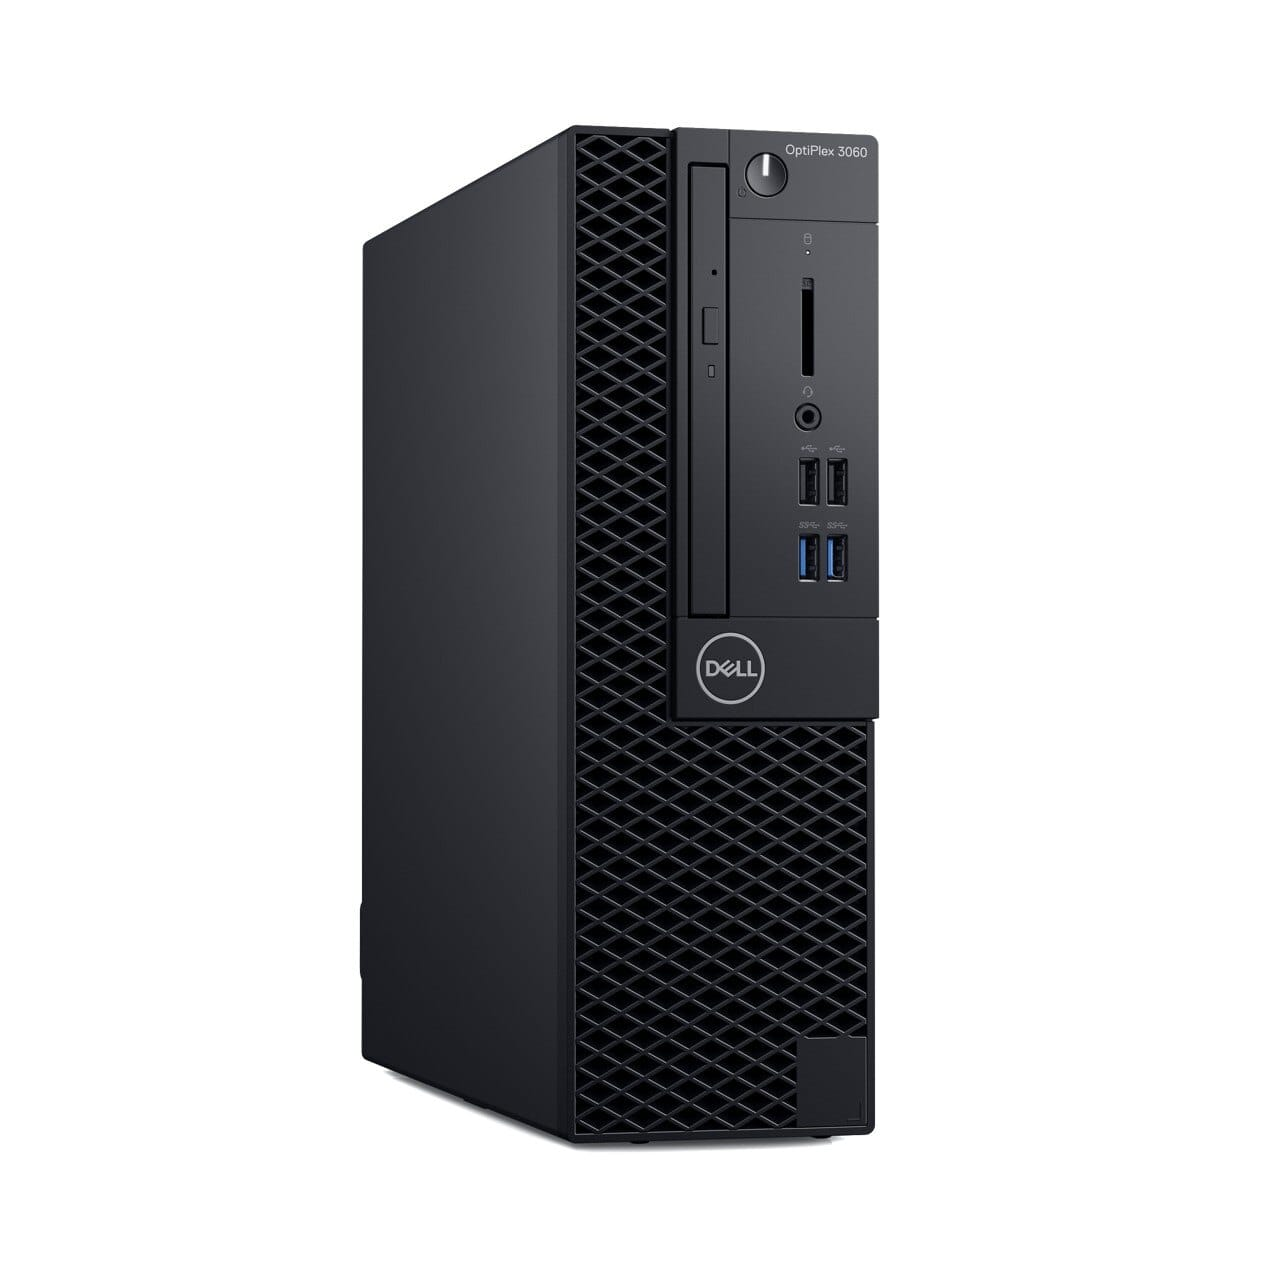 Dell OptiPlex 3060 Small Form Factor Desktop- Intel i5-8500 - 256GB SSD- 8GB Ram: $659.99 + FS + $198 Back in Rakuten Super Points (Other Dell Deals Available)